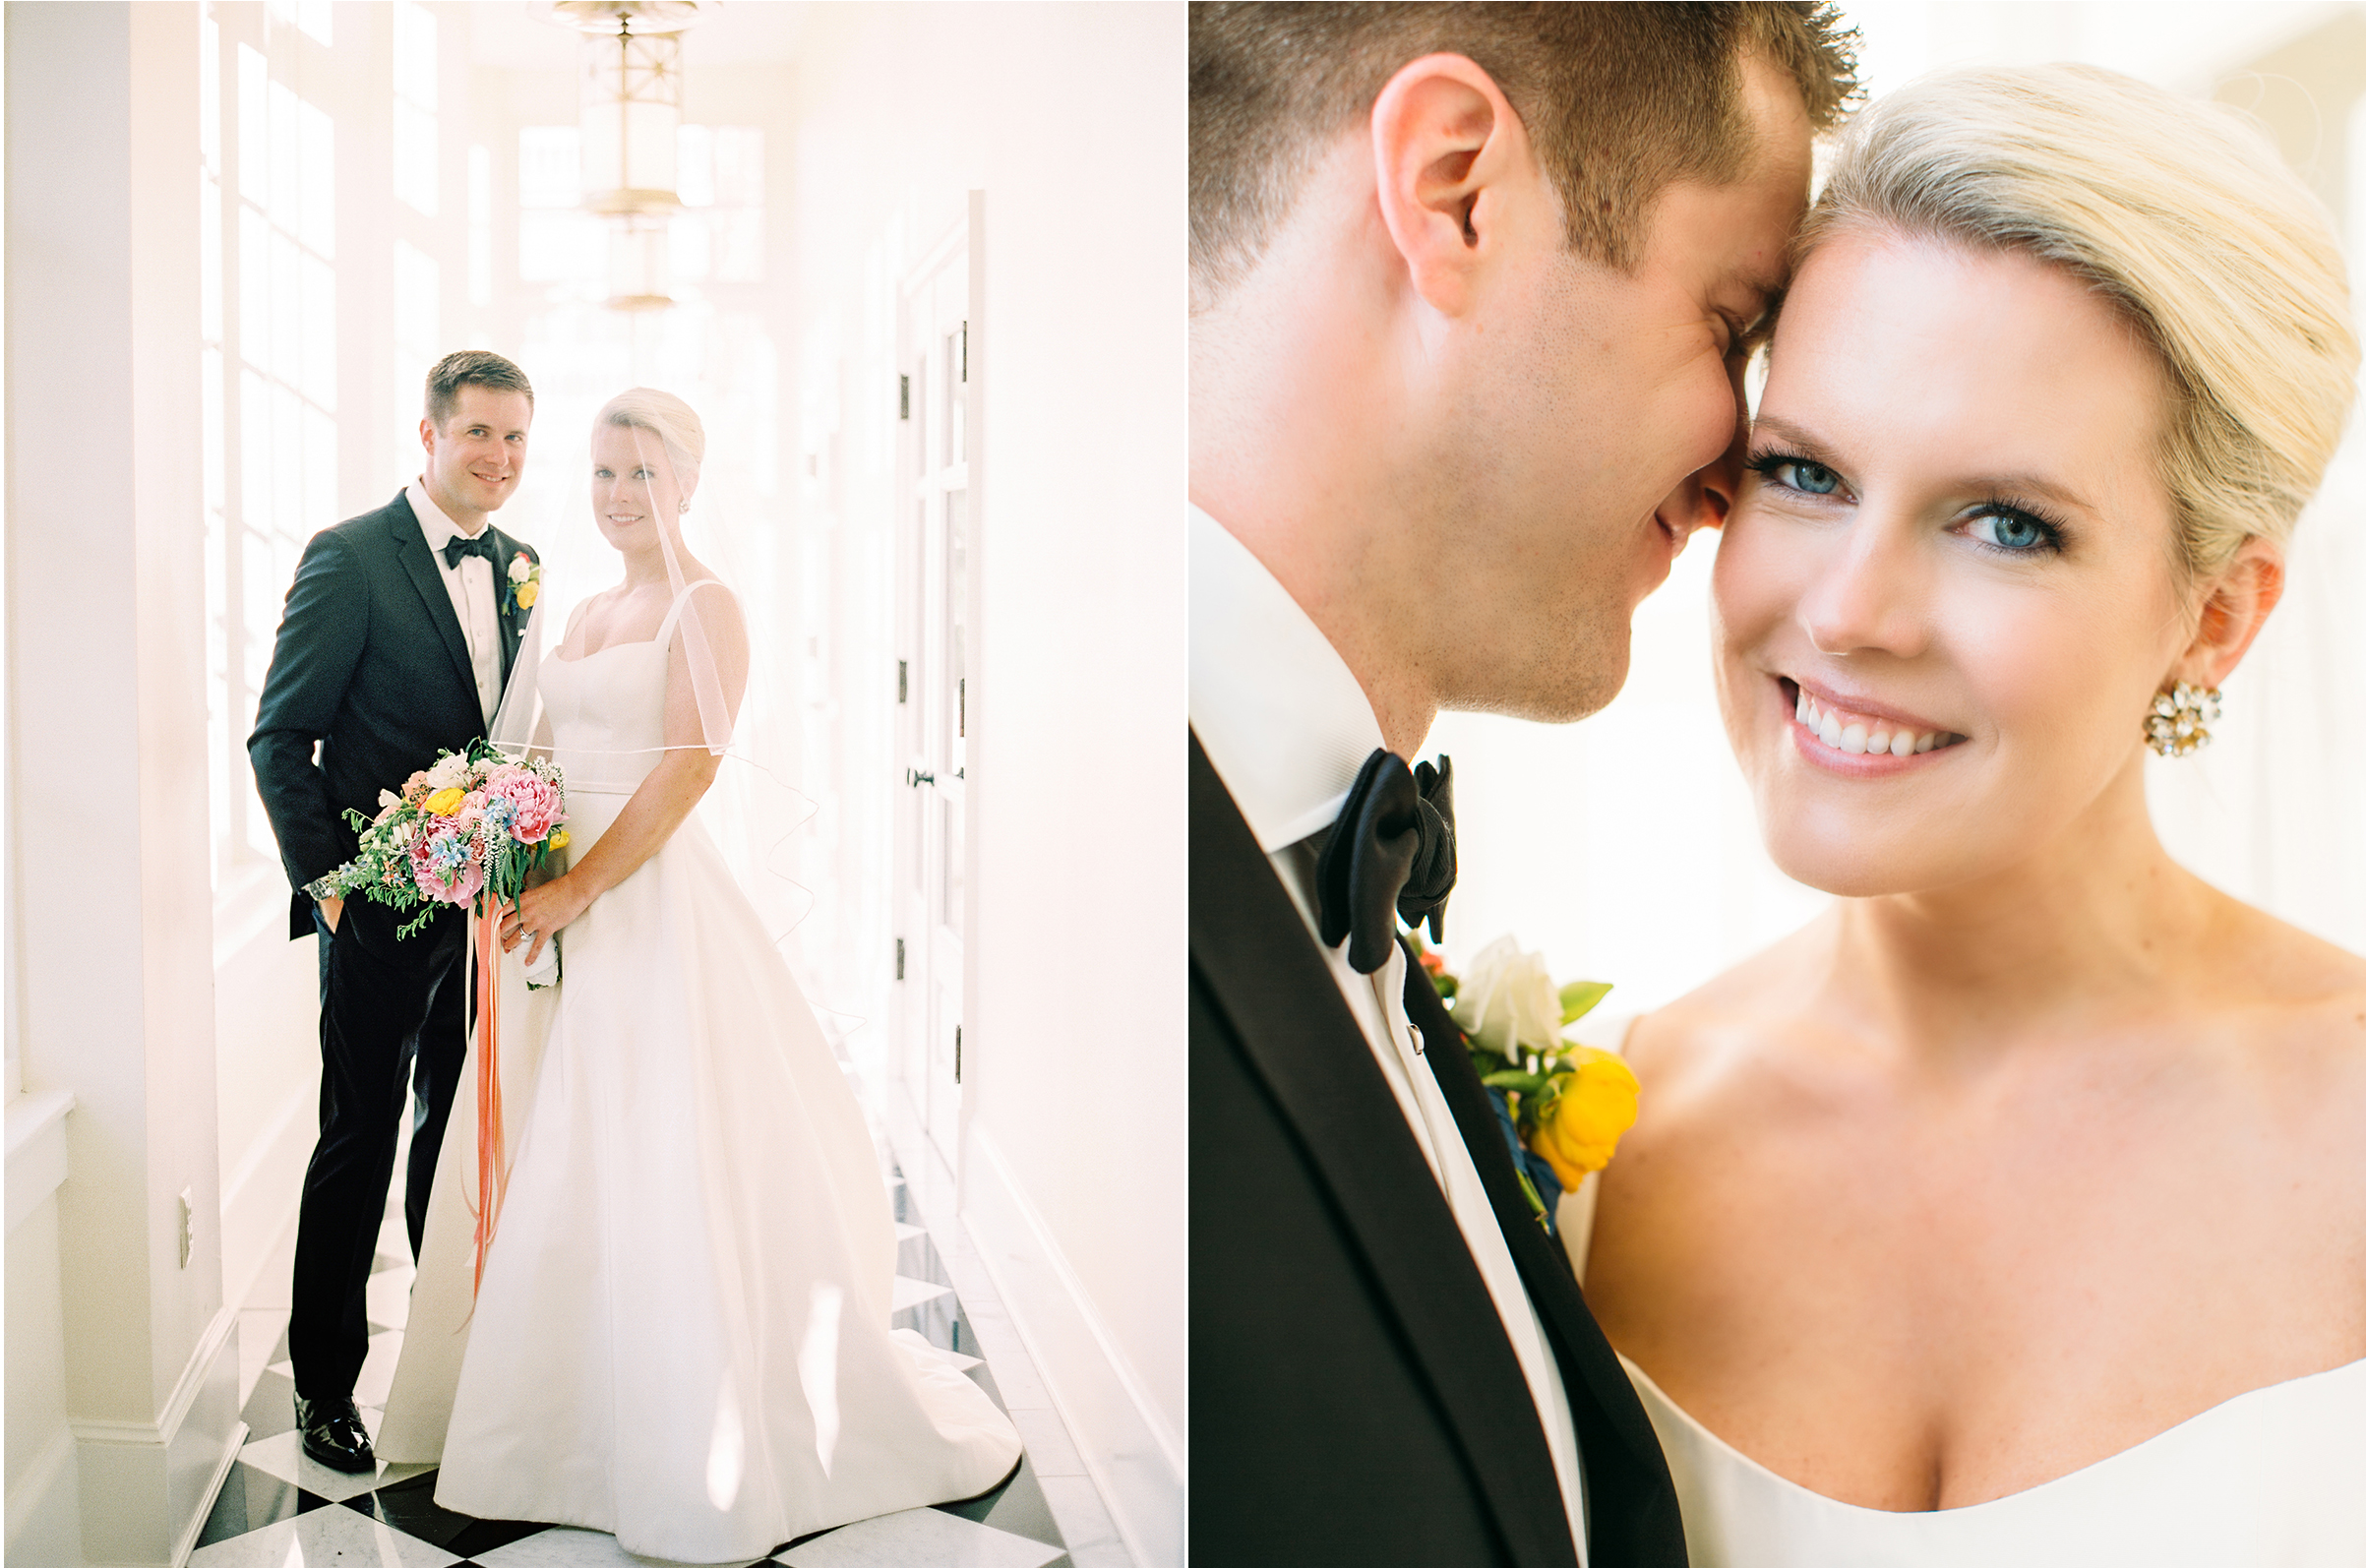 katie stoops photography-homestead wedding29.jpg